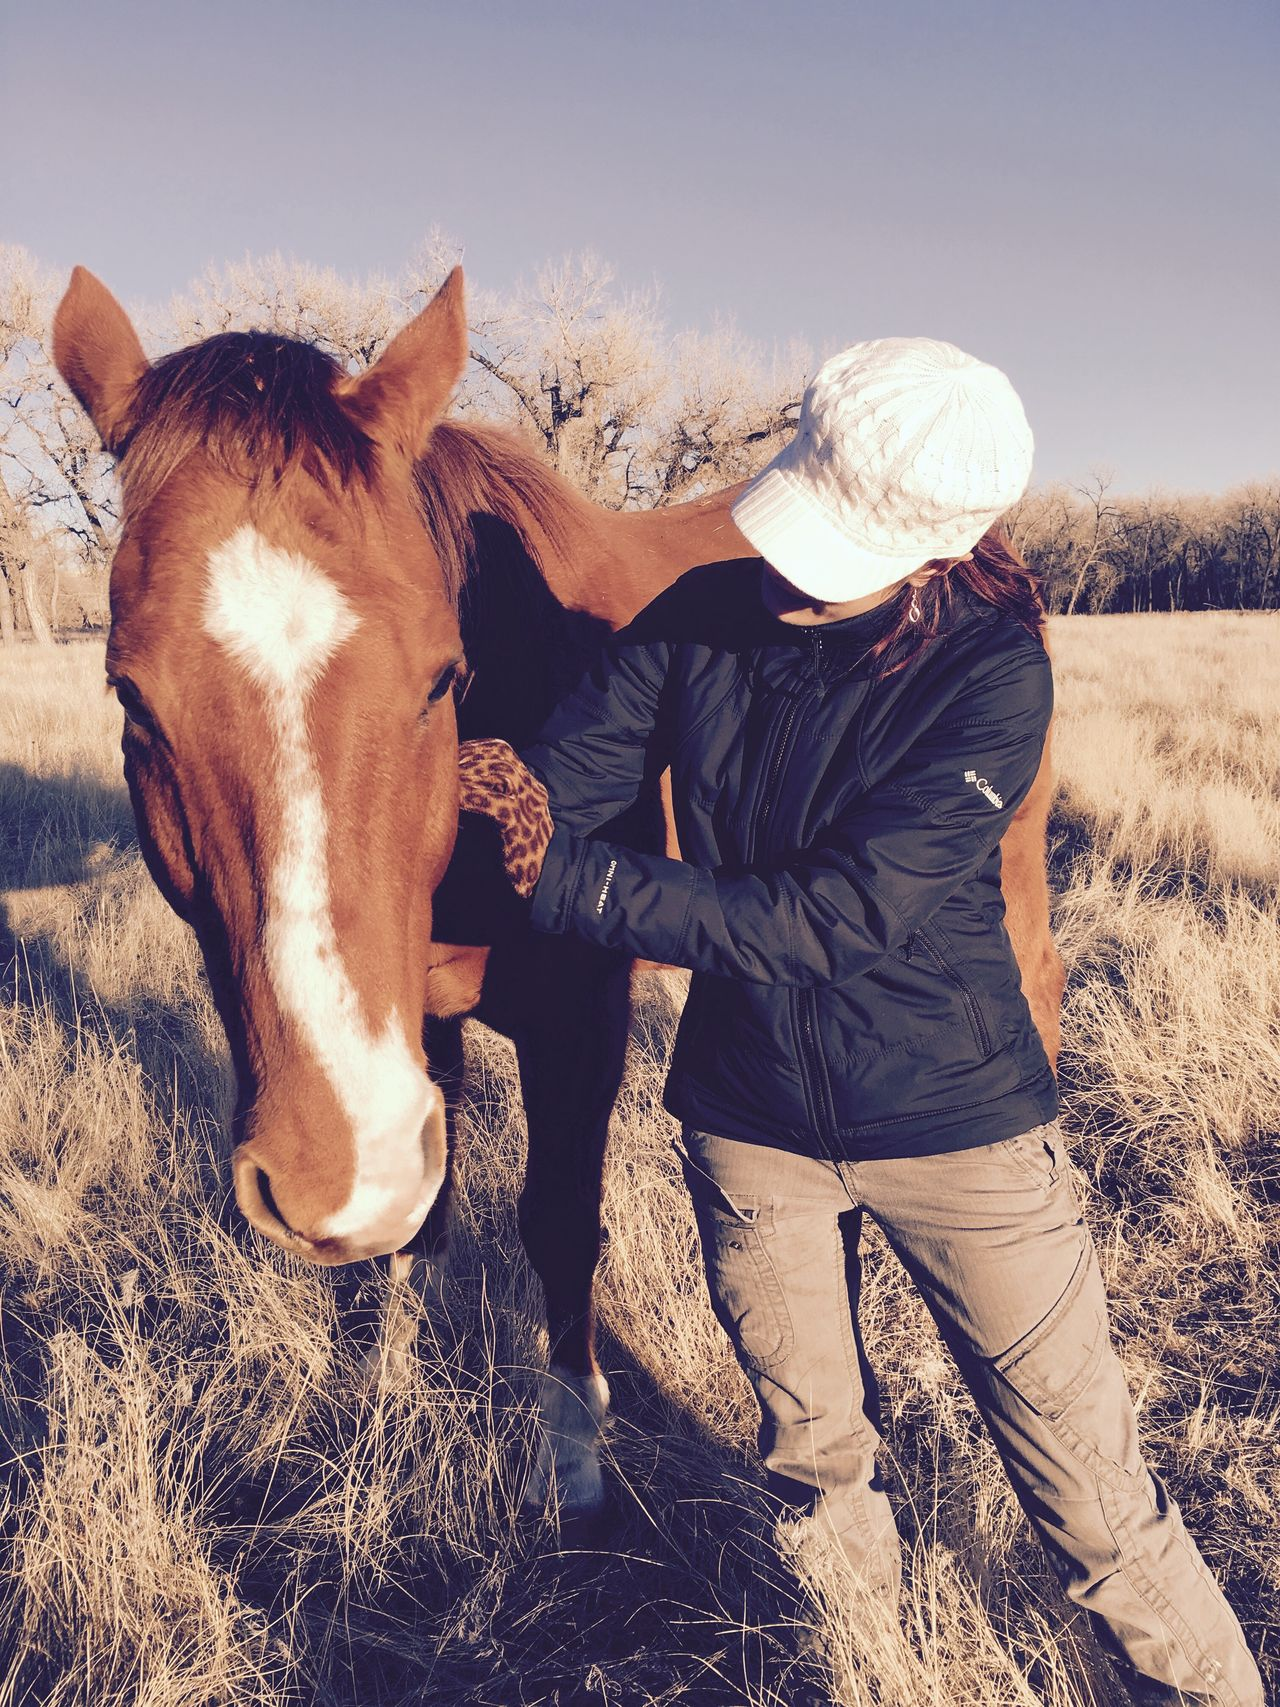 Making a friend Domestic Animals Livestock Animal Themes Mammal Horse Sky Nature One Animal Field Outdoors Agriculture Grass Landscape Day One Person Love Beauty In Nature Perspective Photography Petting Animals Relaxing Moments Colorado